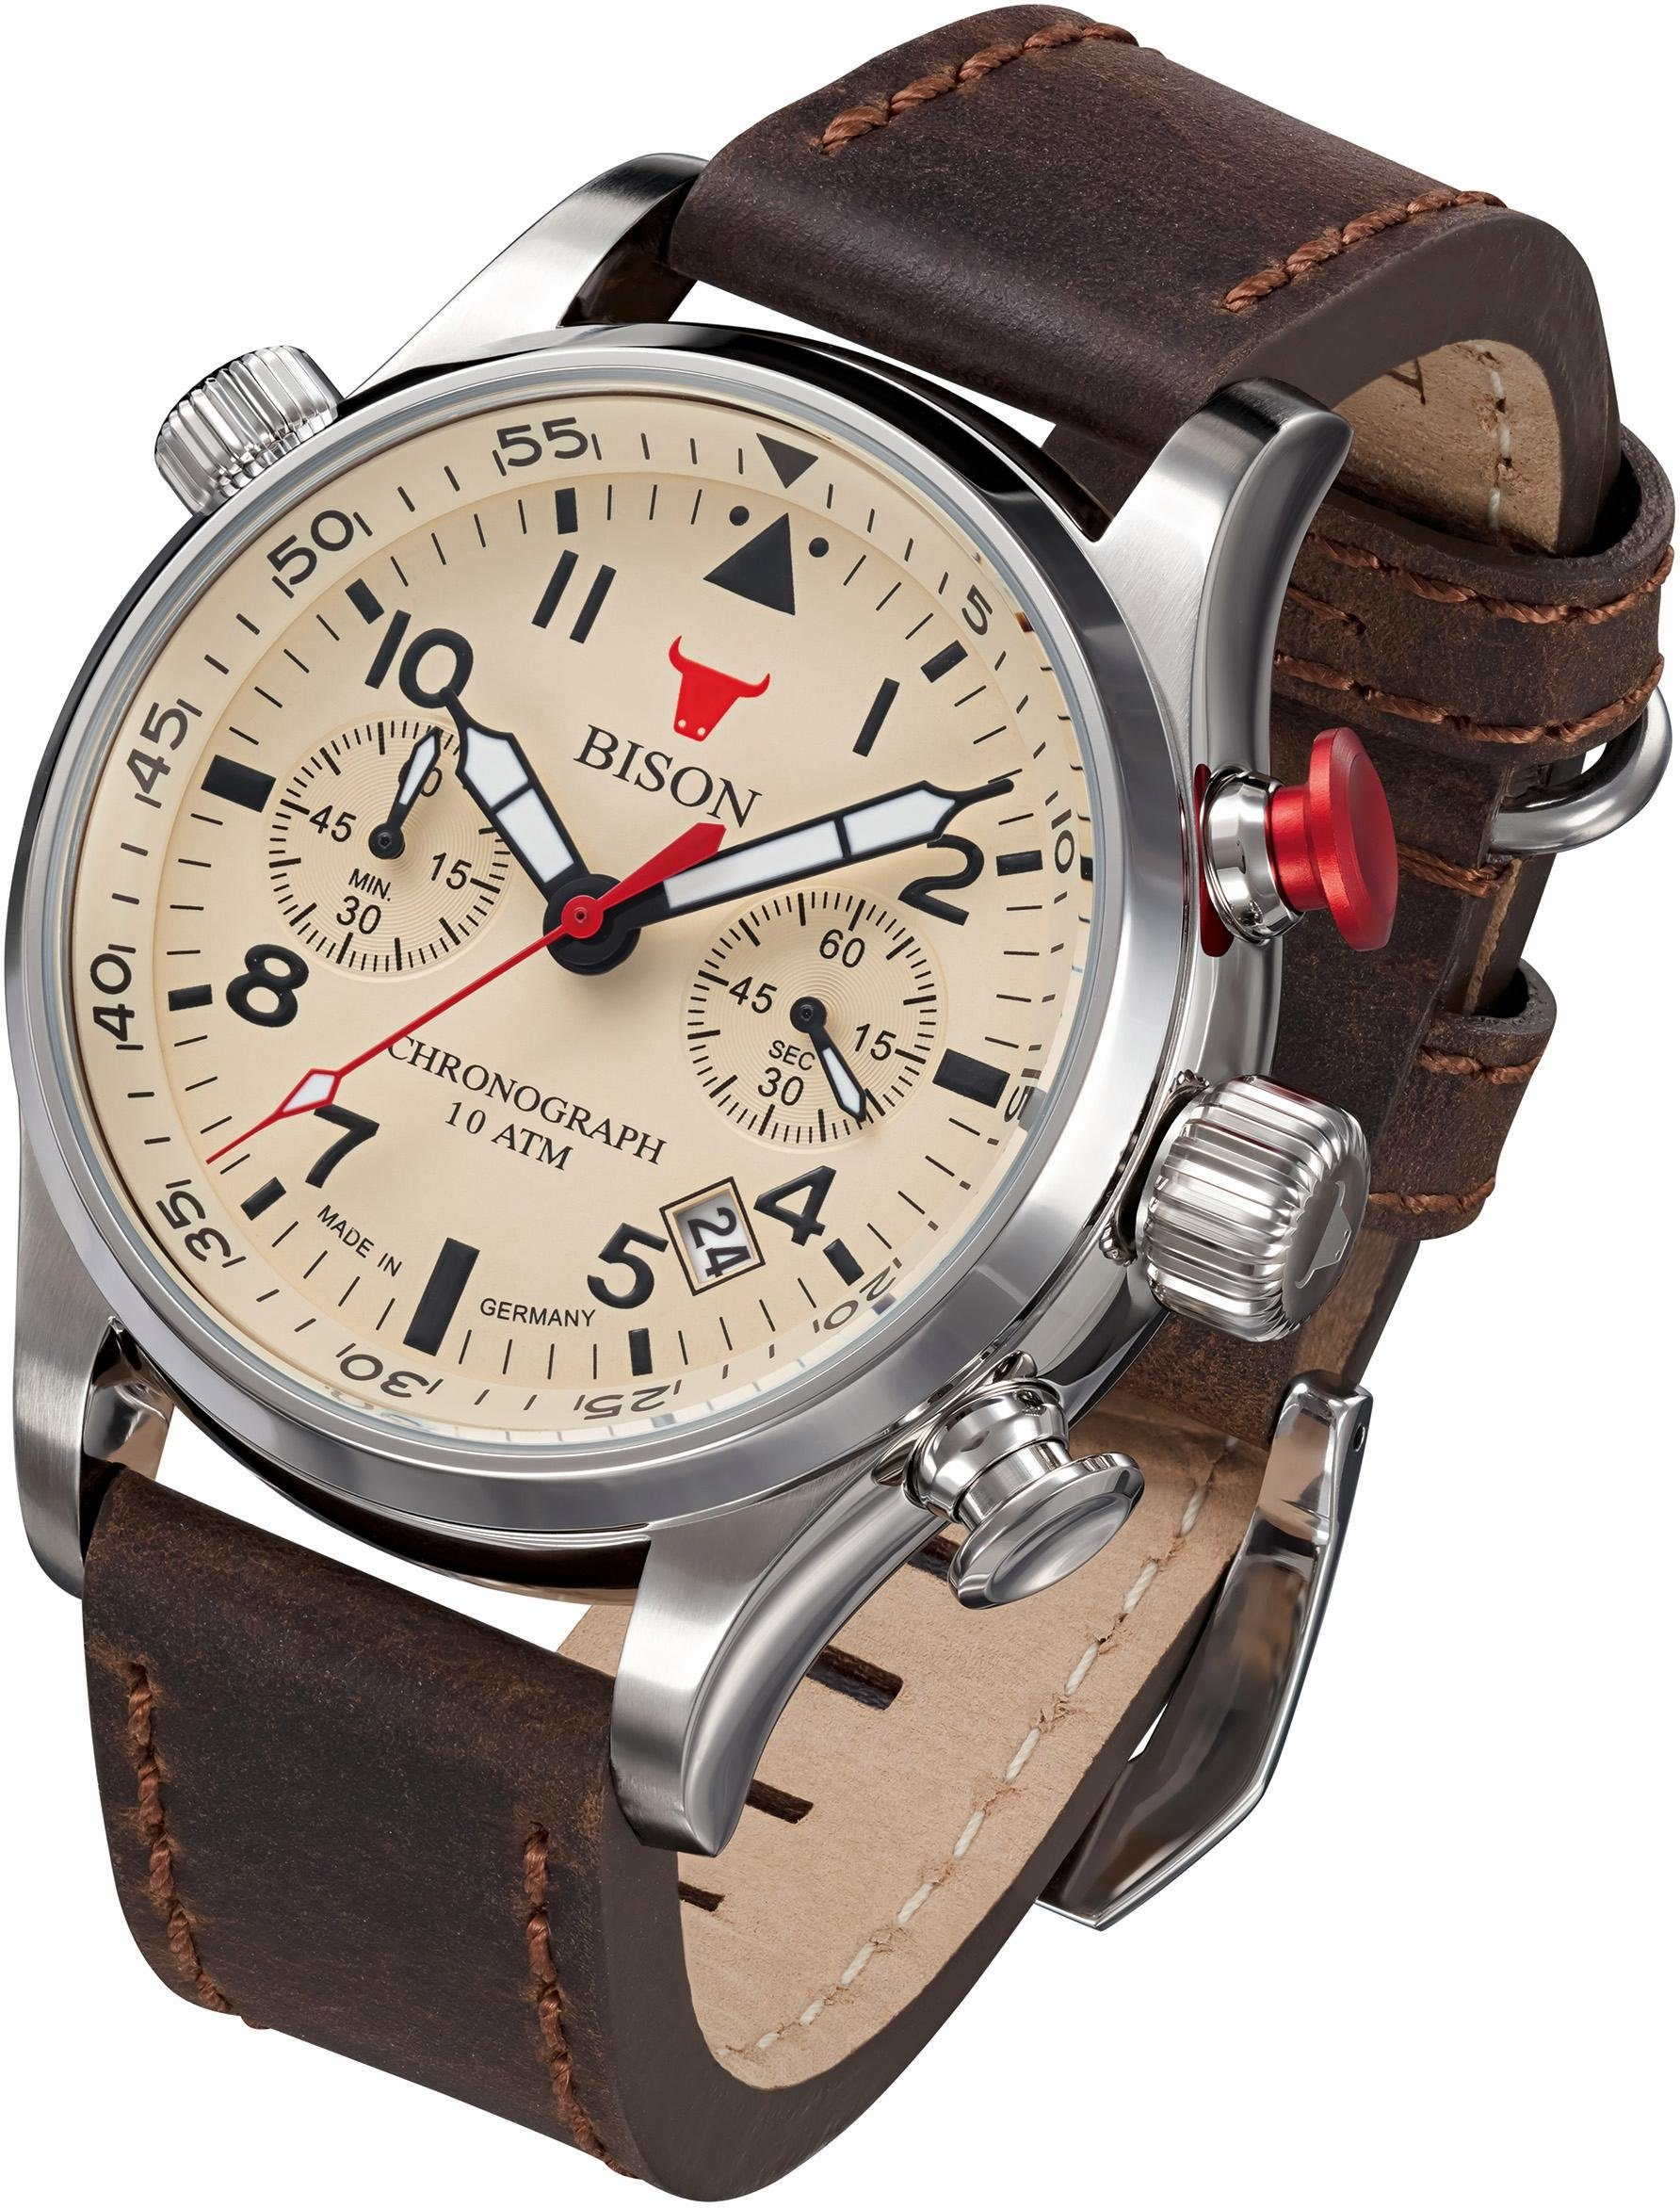 BISON Chronograph »Bison No. 7, BI0007CR«, Made in Germany